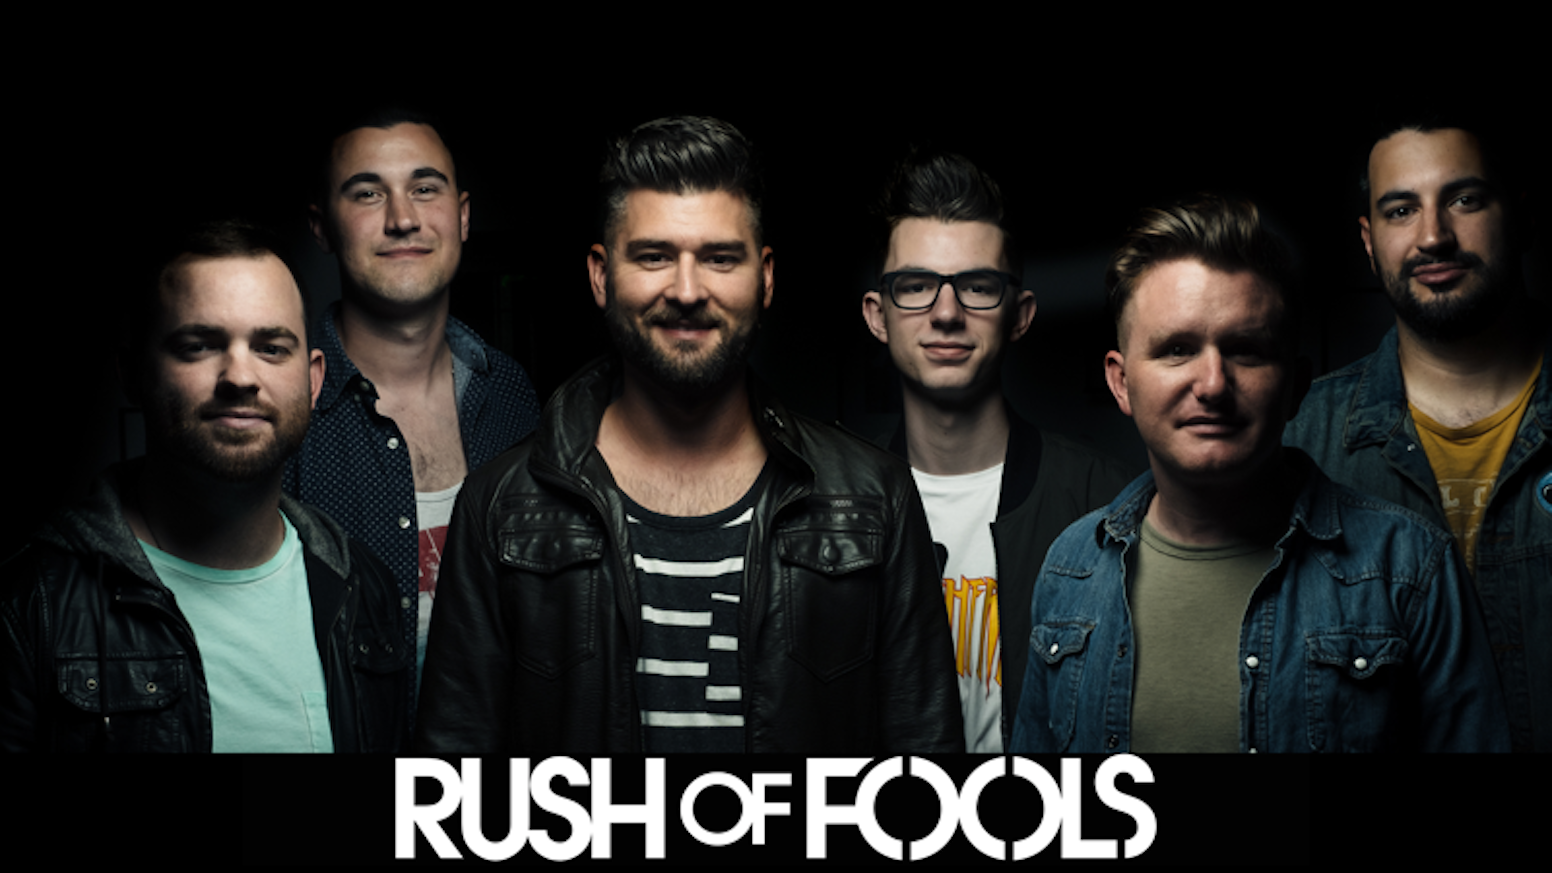 New Music, Videos & Fan Experience From Rush of Fools by Gresham ...